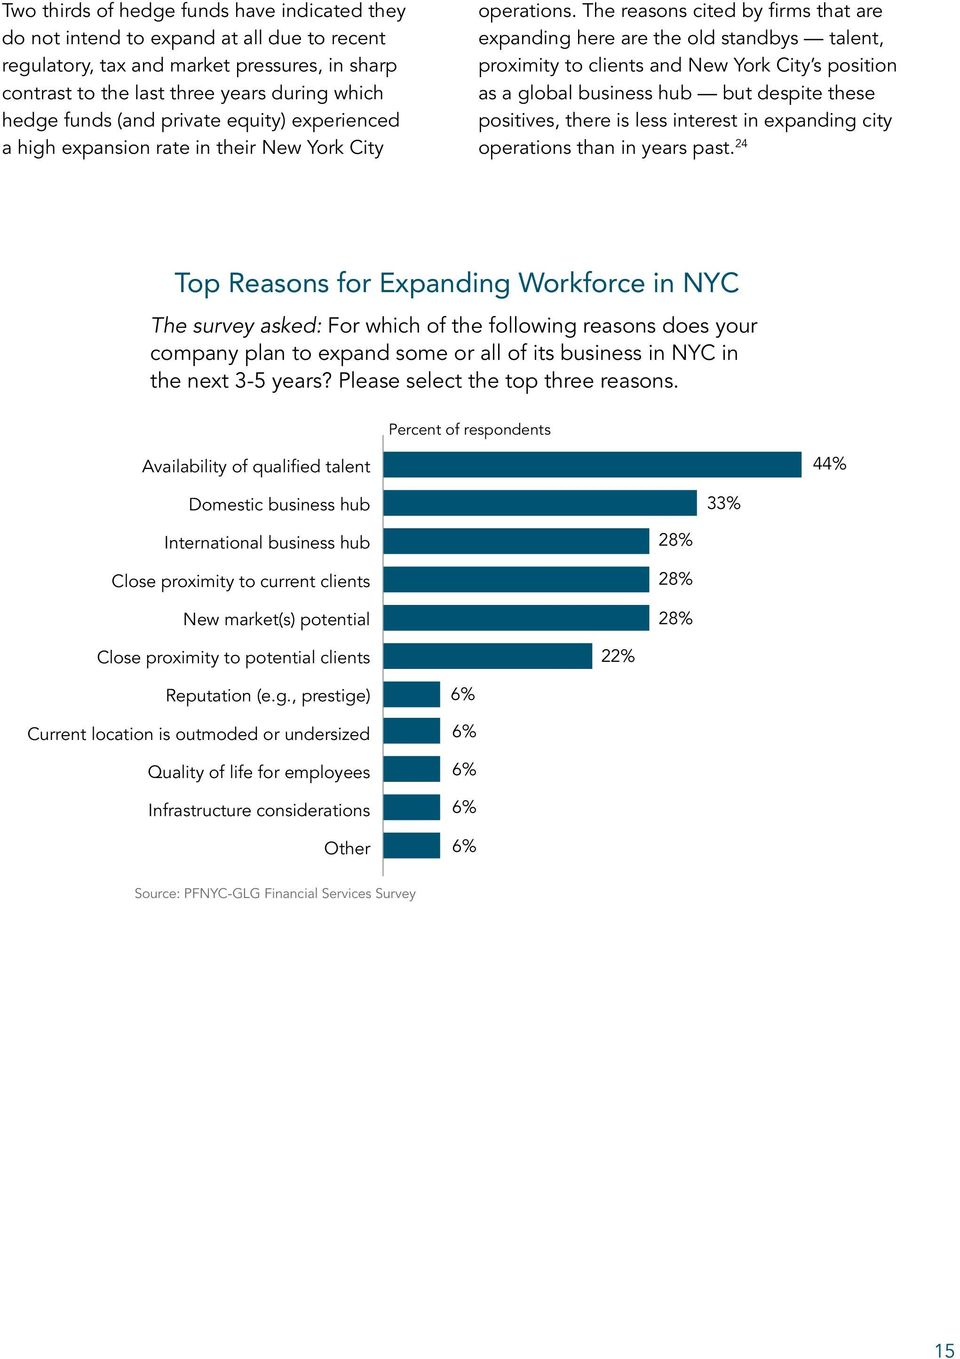 The reasons cited by firms that are expanding here are the old standbys talent, proximity to clients and New York City s position as a global business hub but despite these positives, there is less